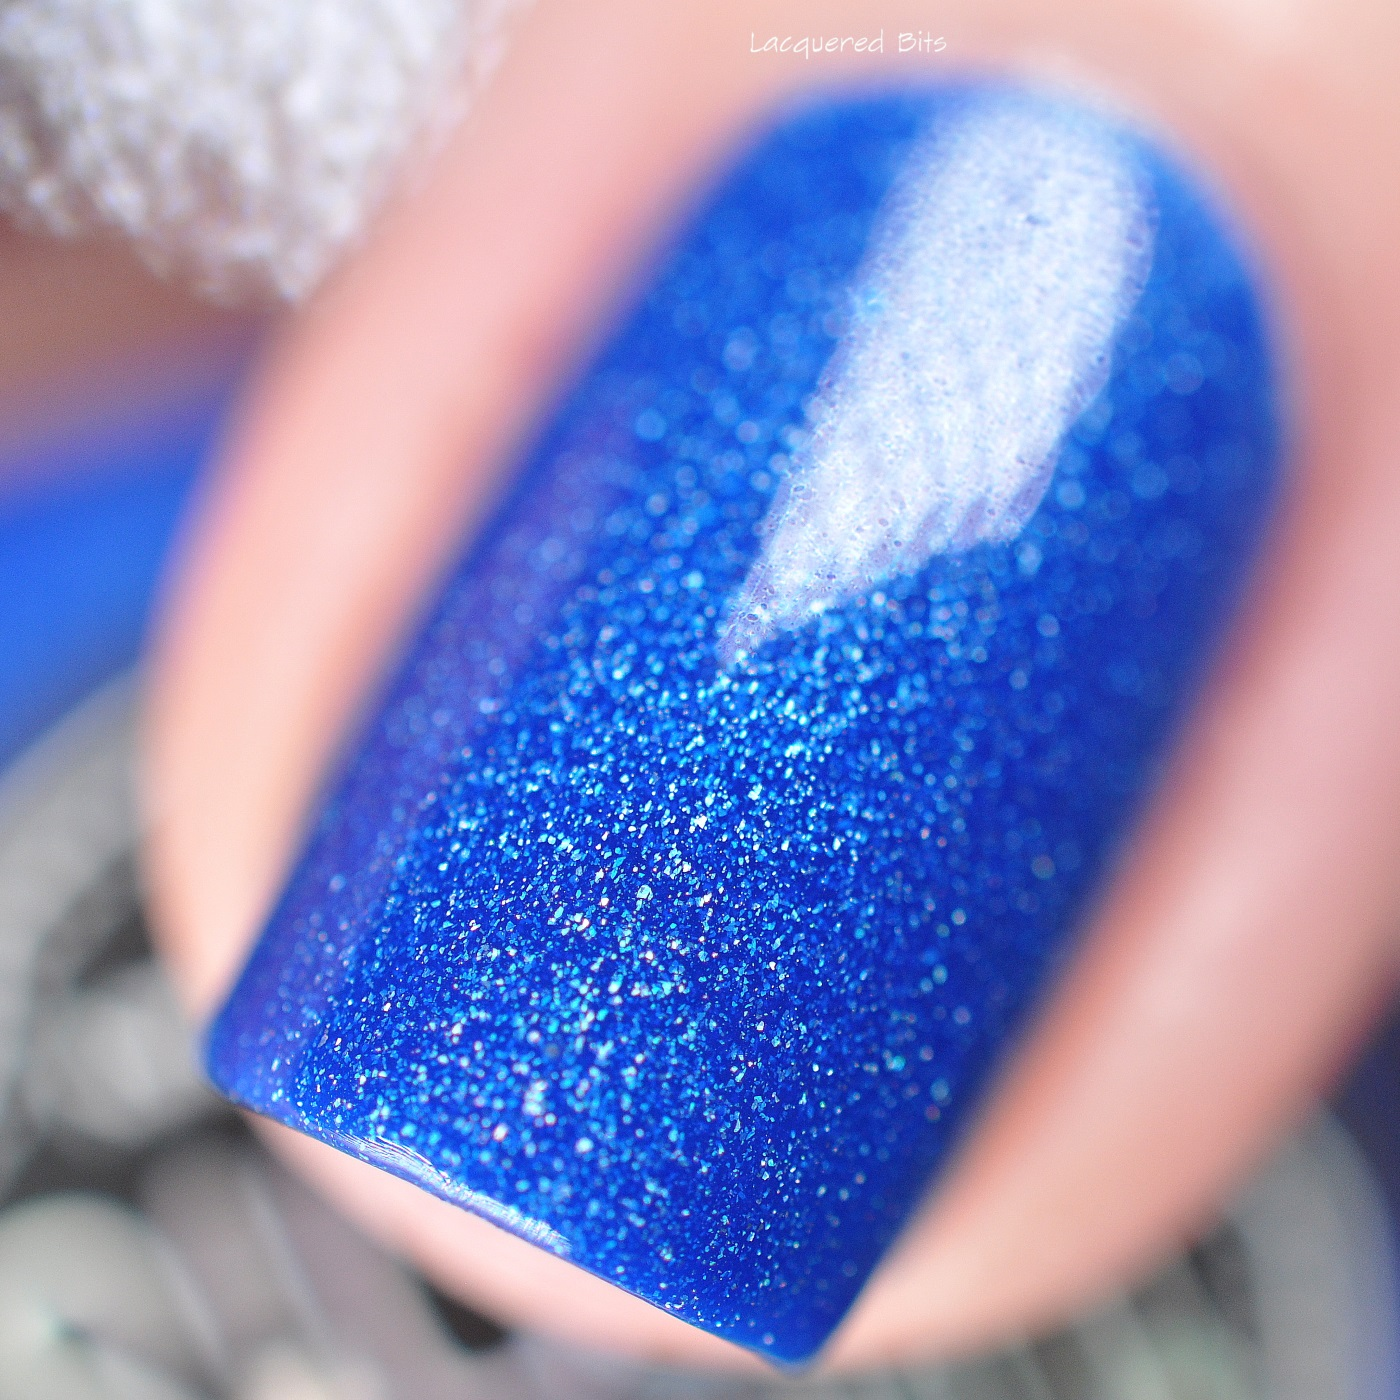 Captain Blue Sky - Il Etait Un Vernis Welcome To Paradise